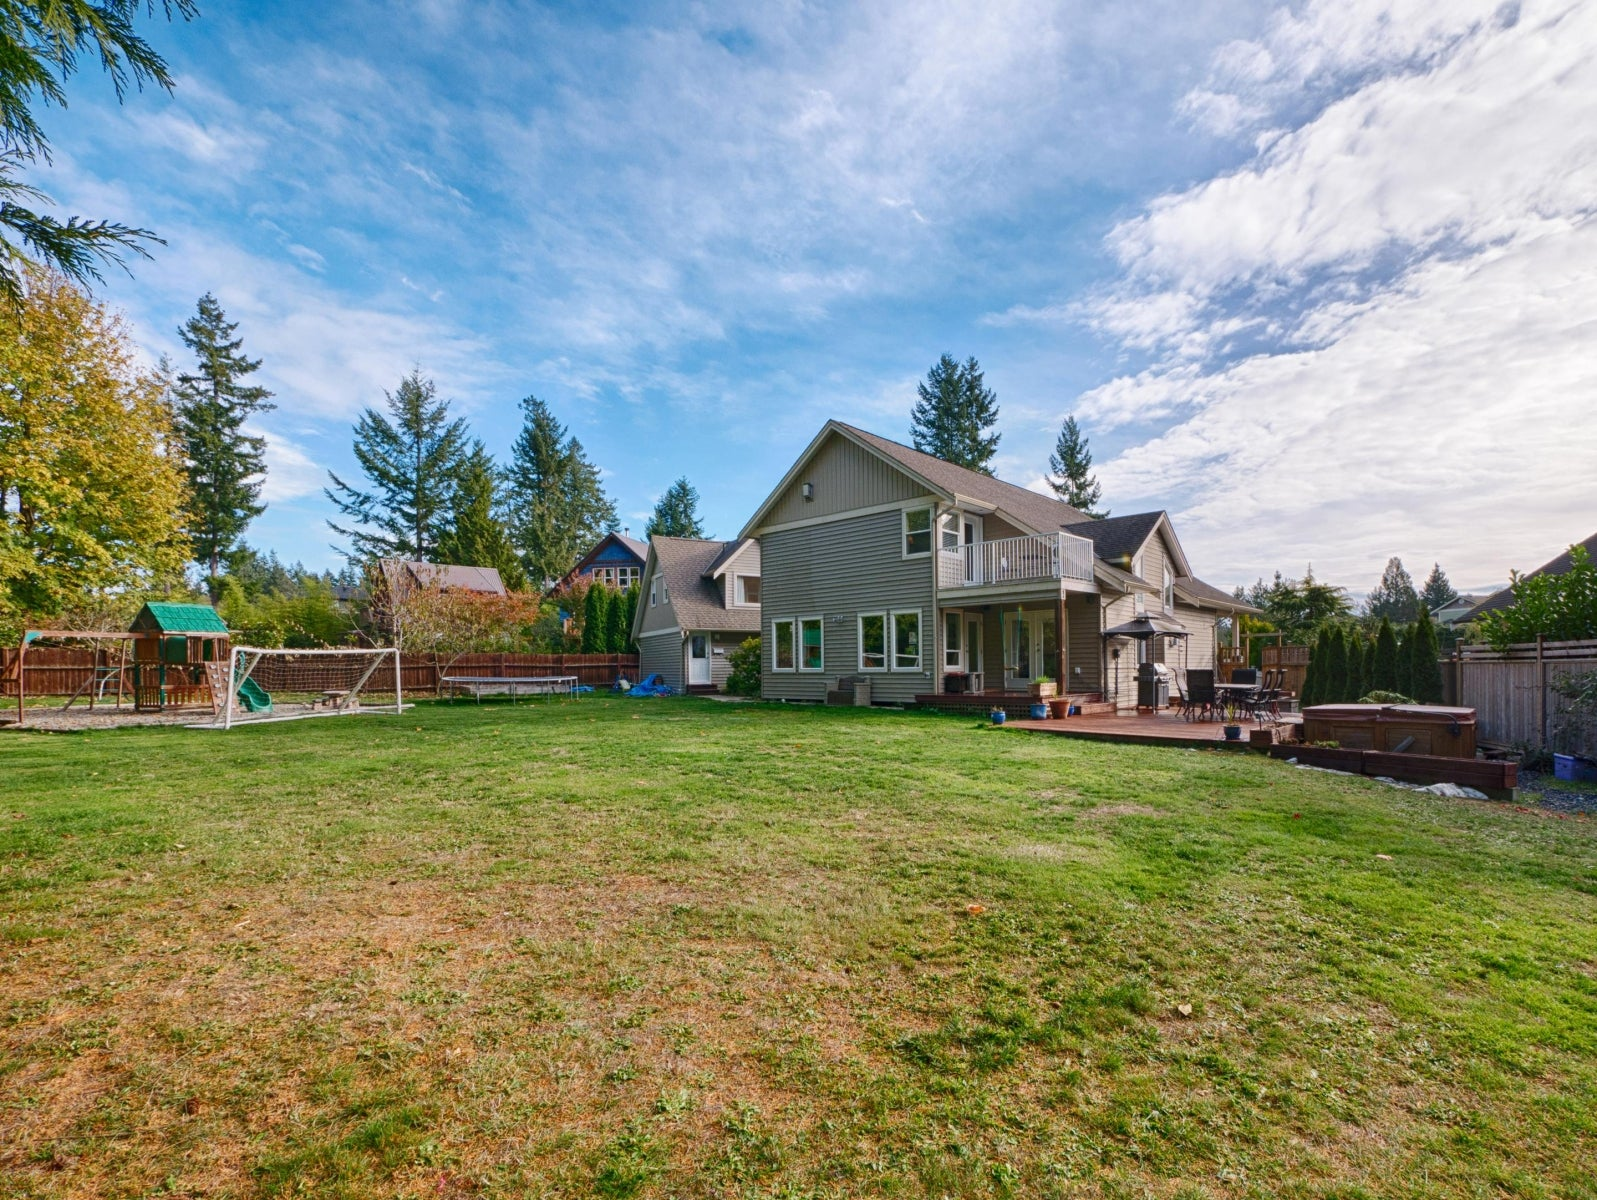 1474 SUNSET PLACE - Gibsons & Area House/Single Family for sale, 4 Bedrooms (R2220208) #25